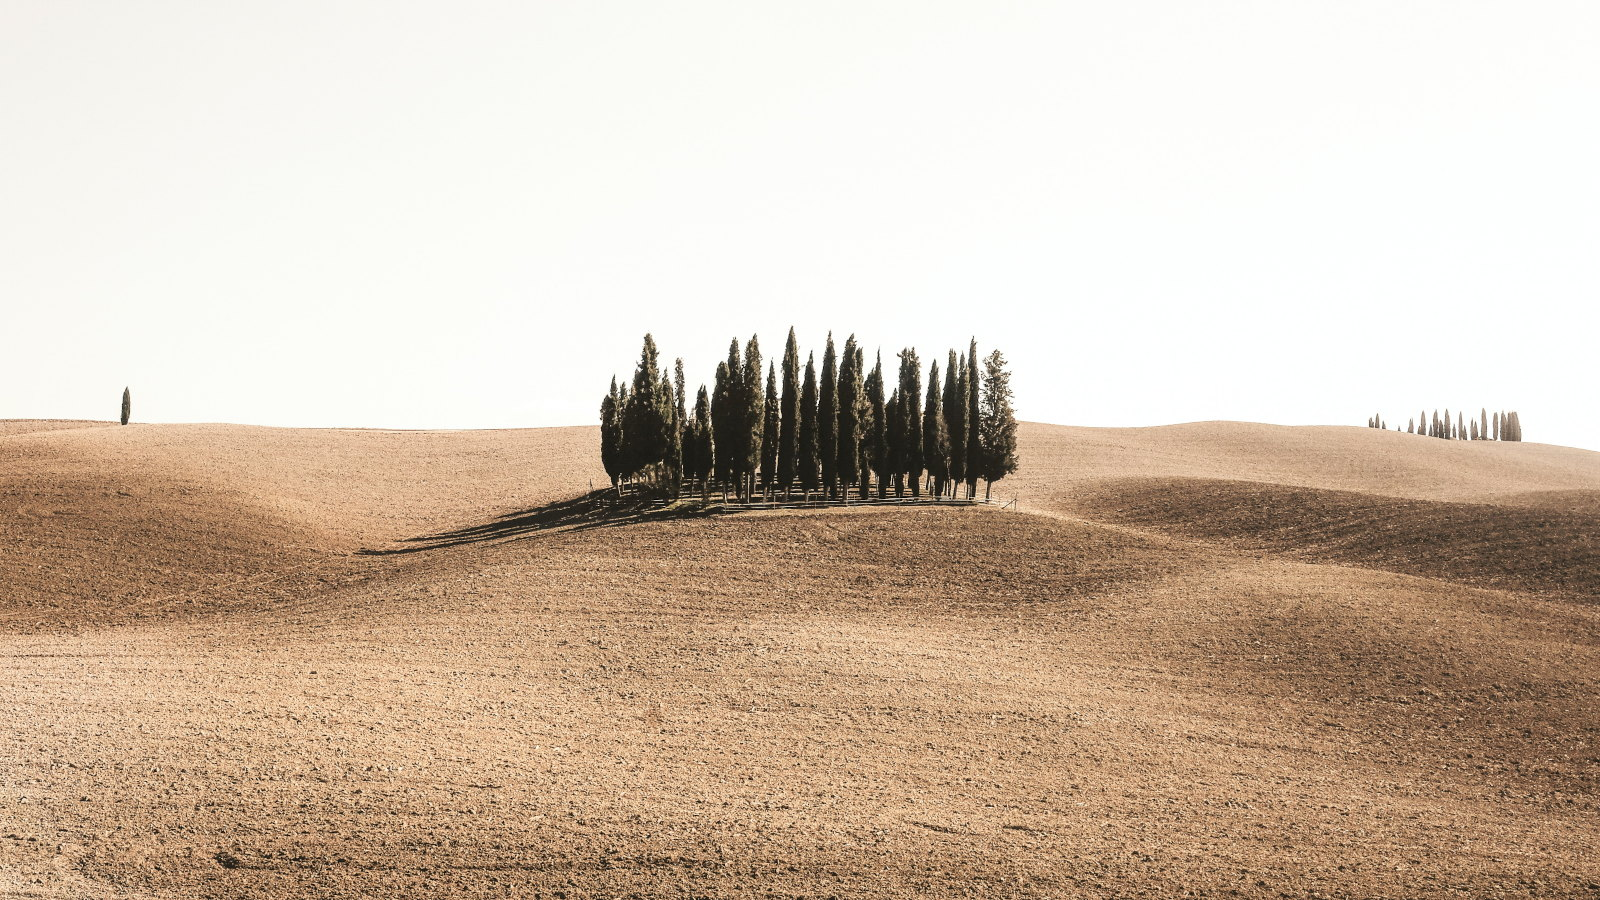 Photo by Cristina Gottardi on Unsplash